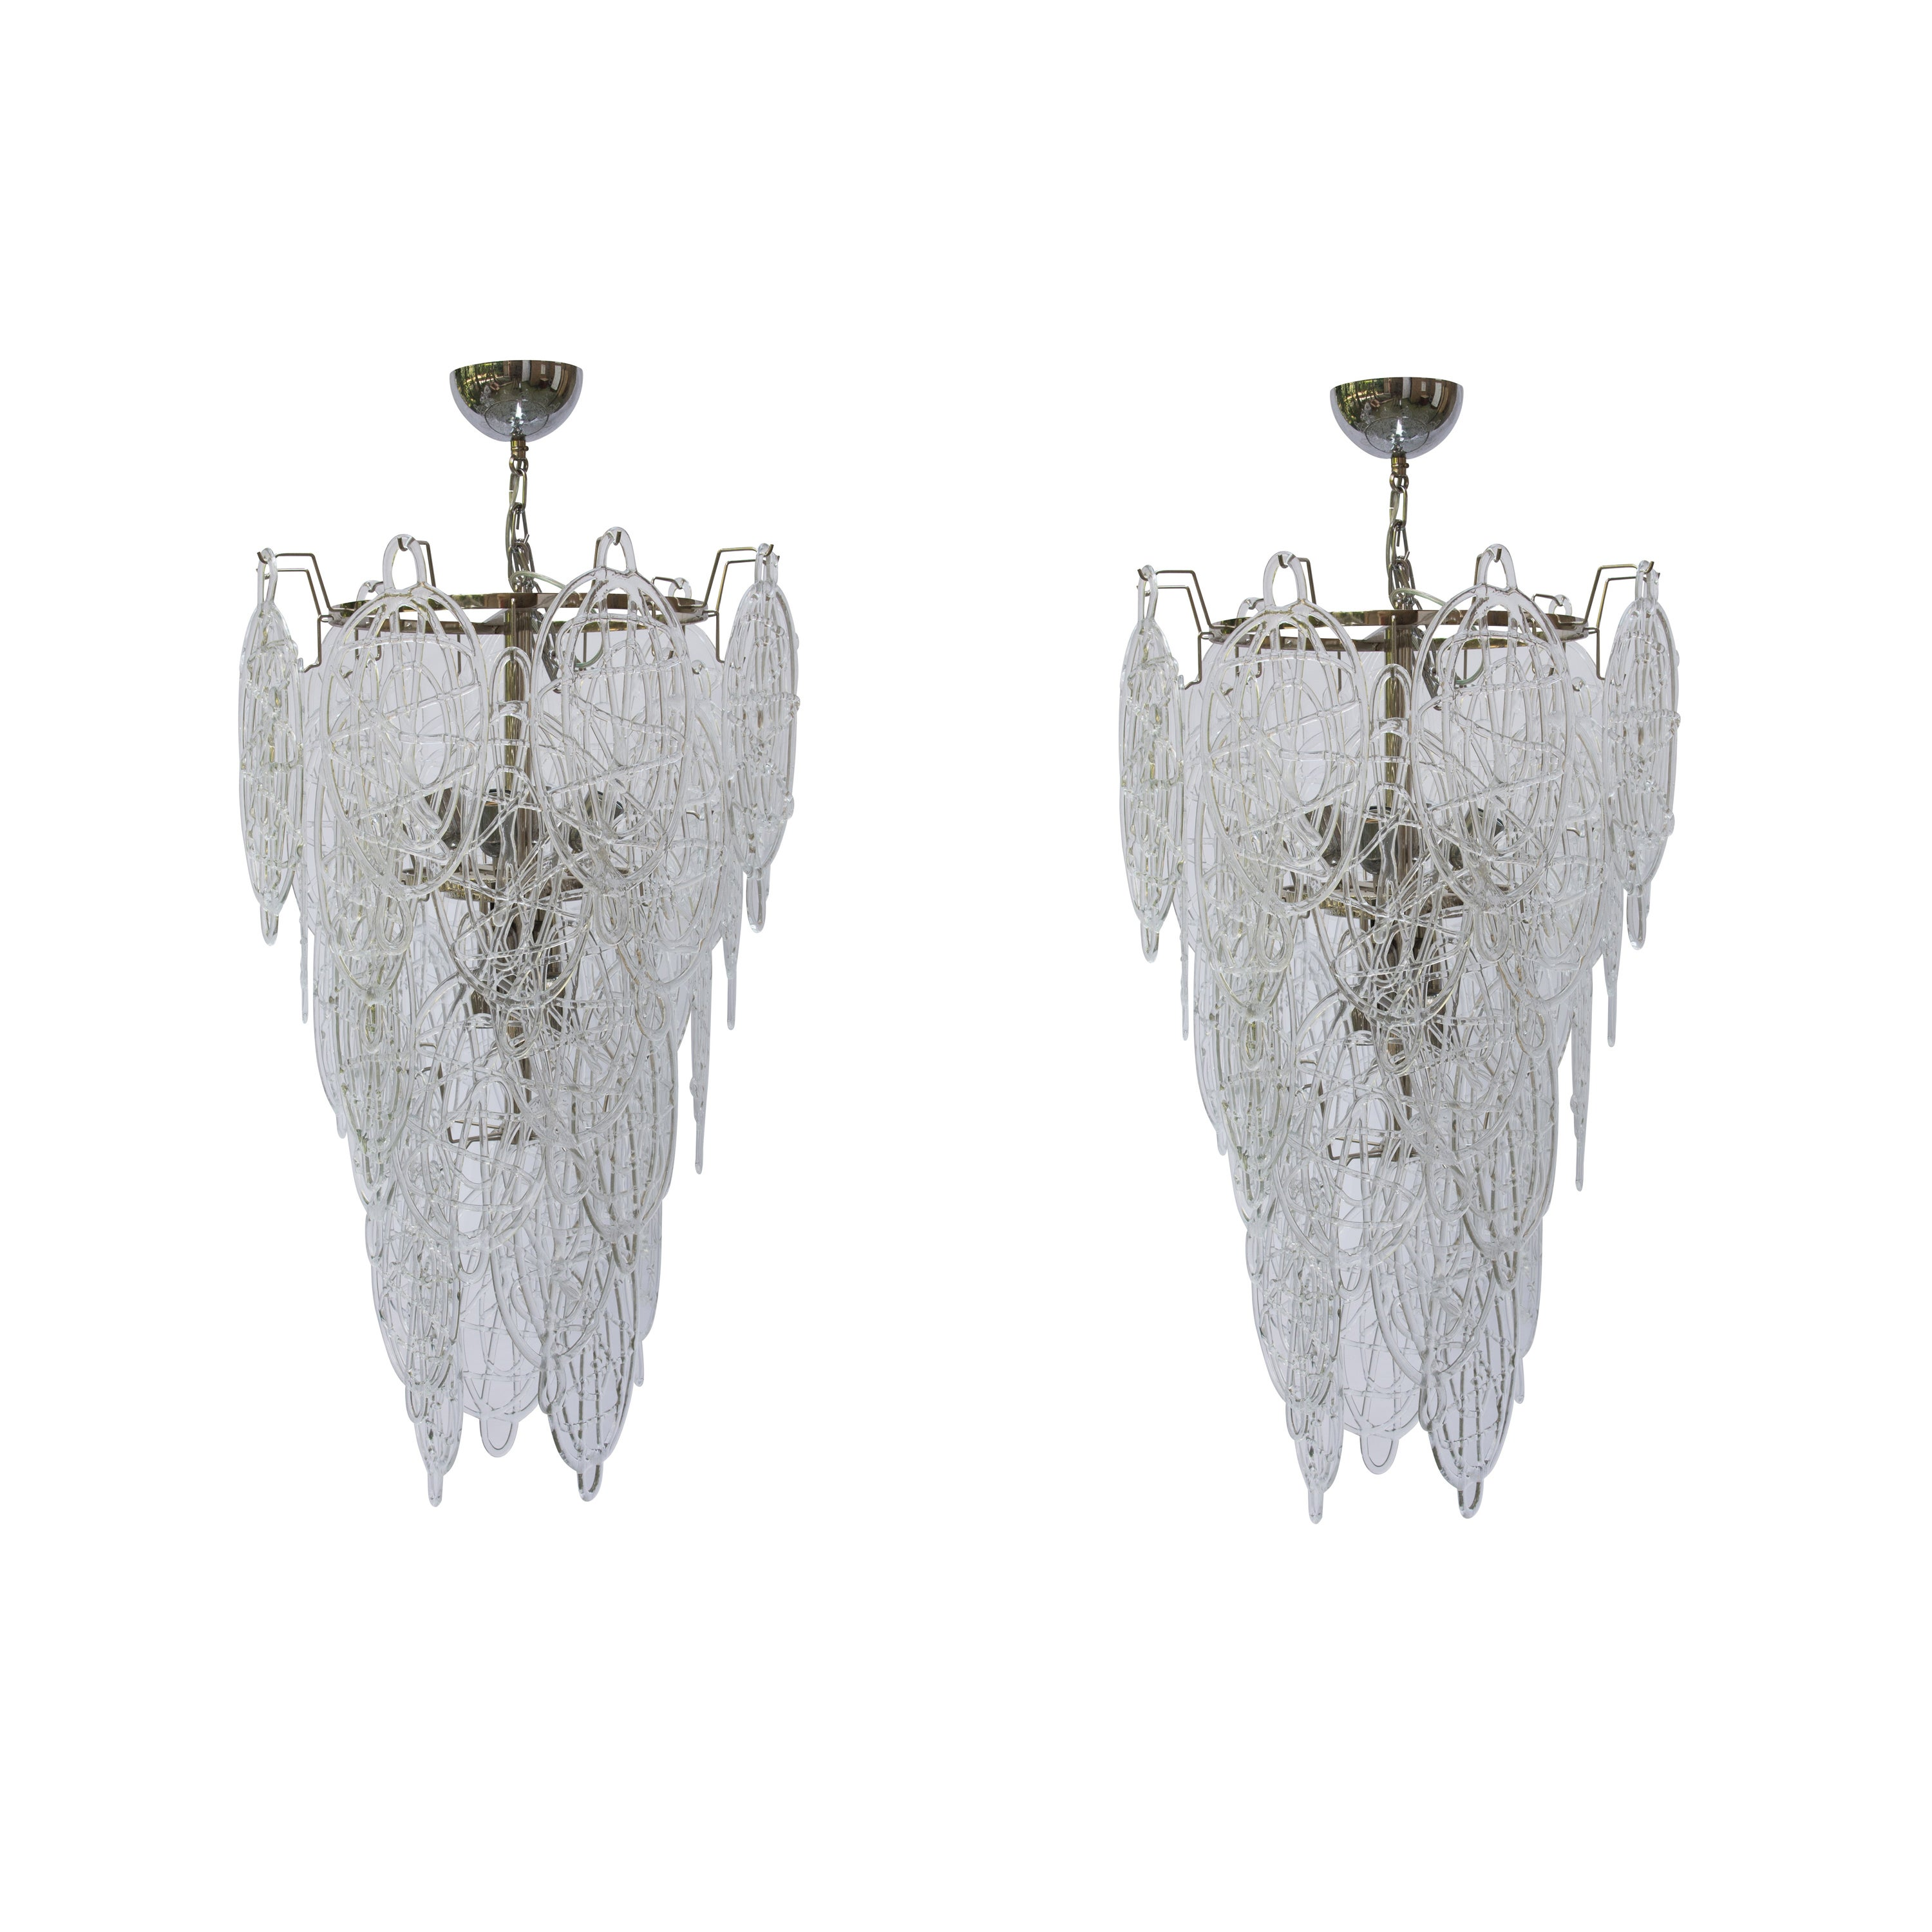 1960s Pair of Venini Ceiling Lights, Italian Murano Design Blown Clear Glass